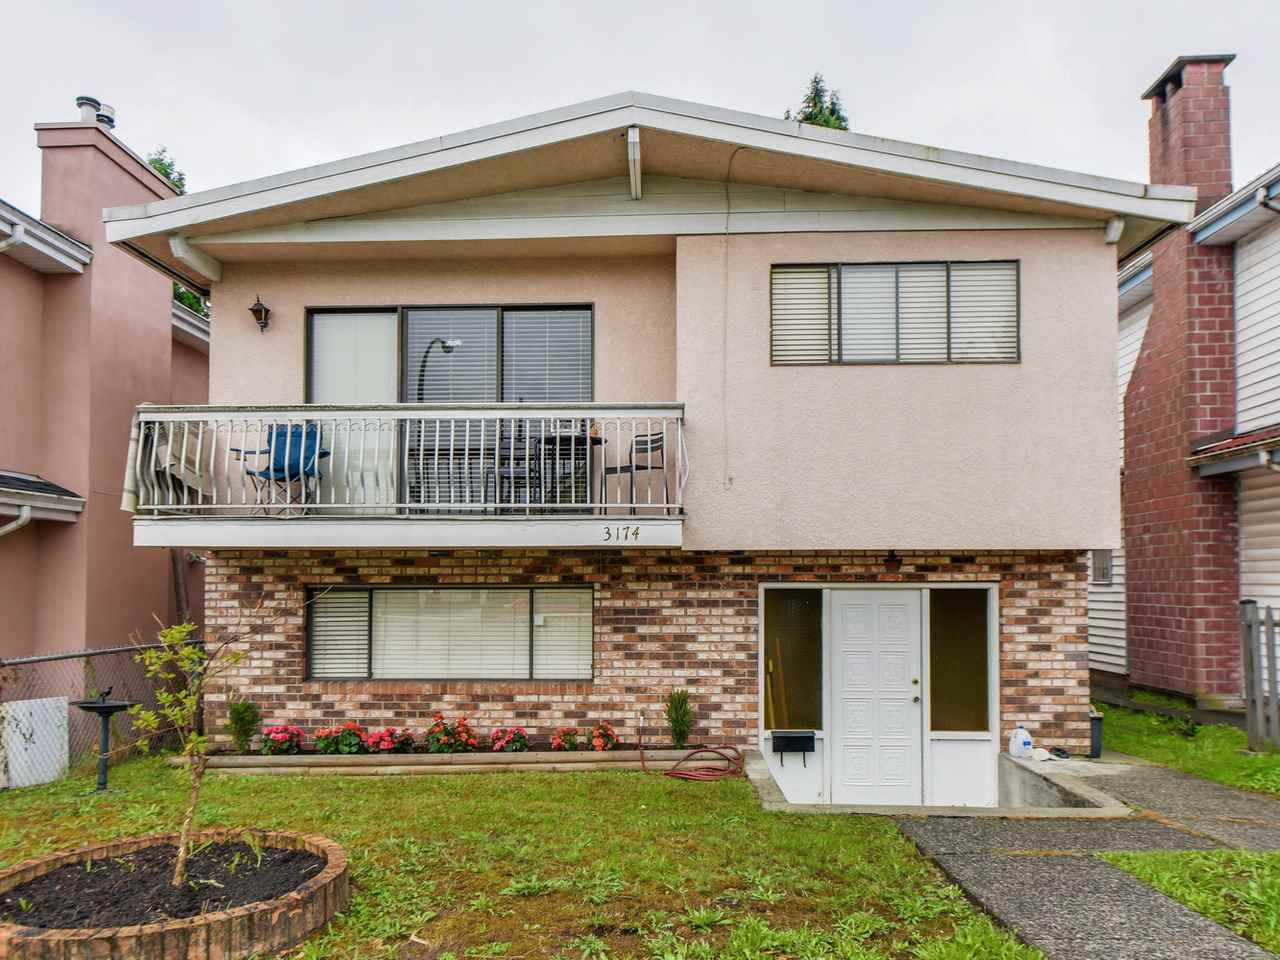 Main Photo: 3174 KINGS AVENUE in Vancouver: Collingwood VE House for sale (Vancouver East)  : MLS® # R2088351